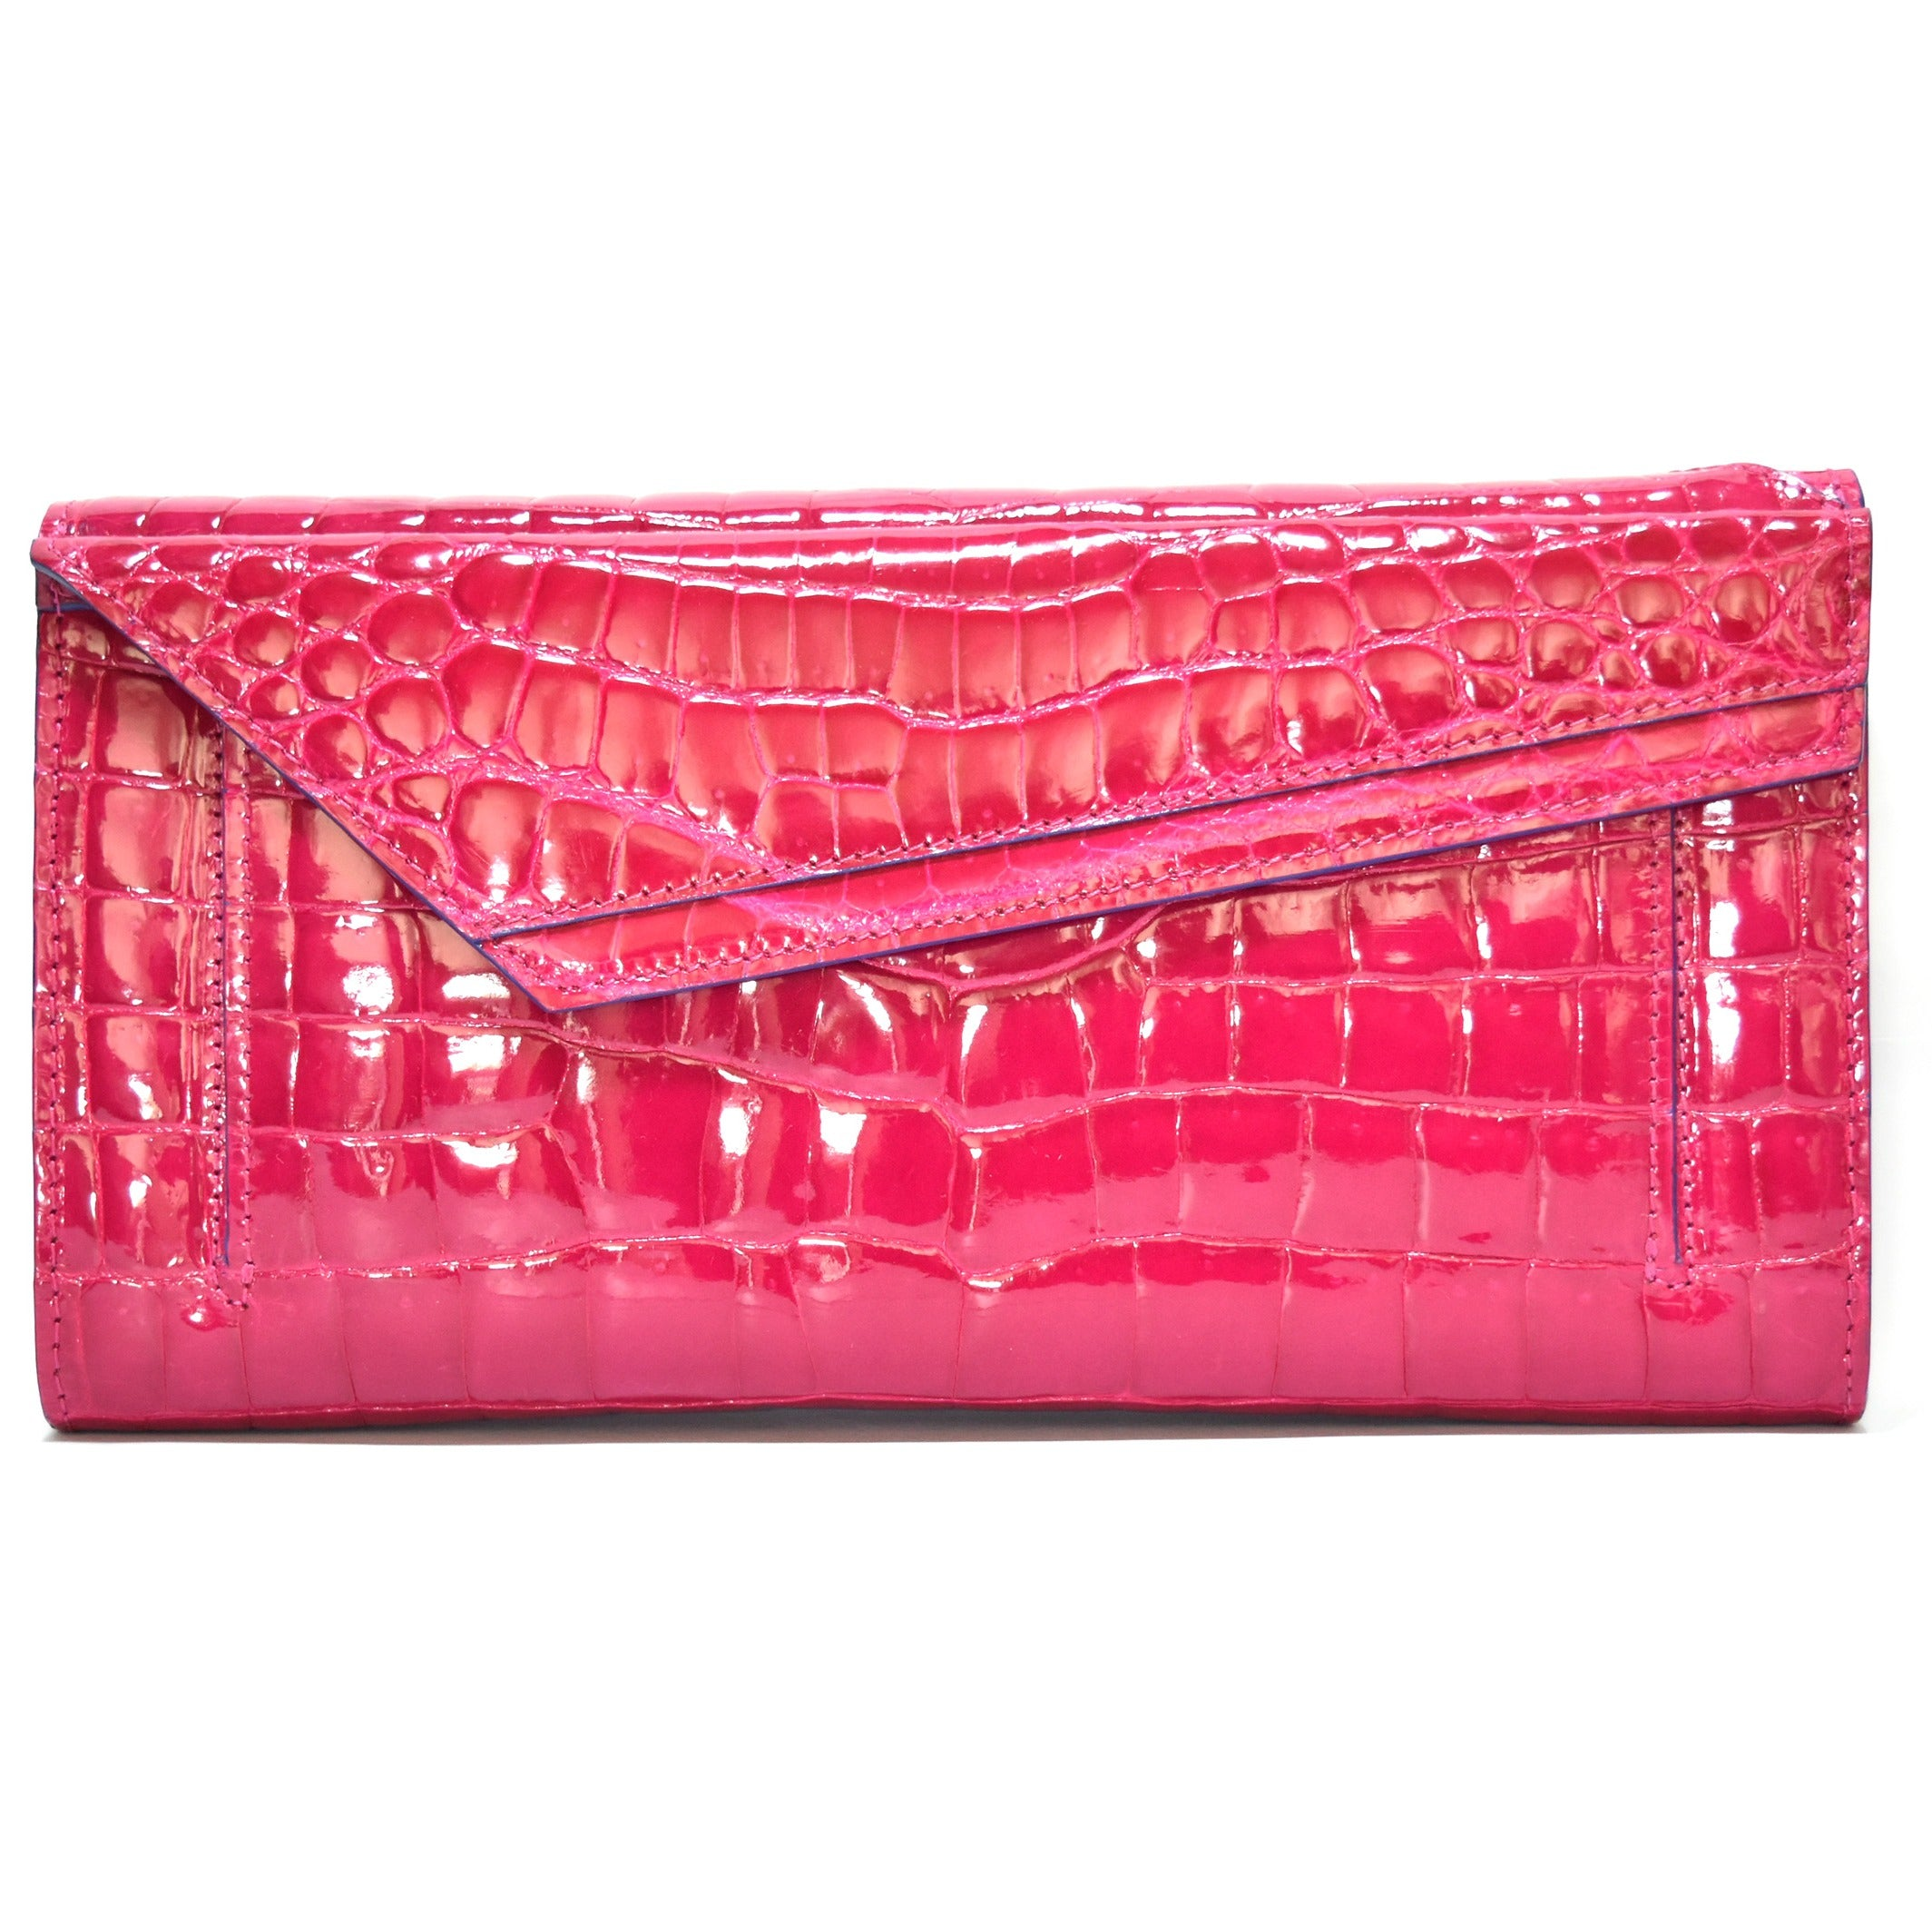 Karina, shiny red croco clutch bag